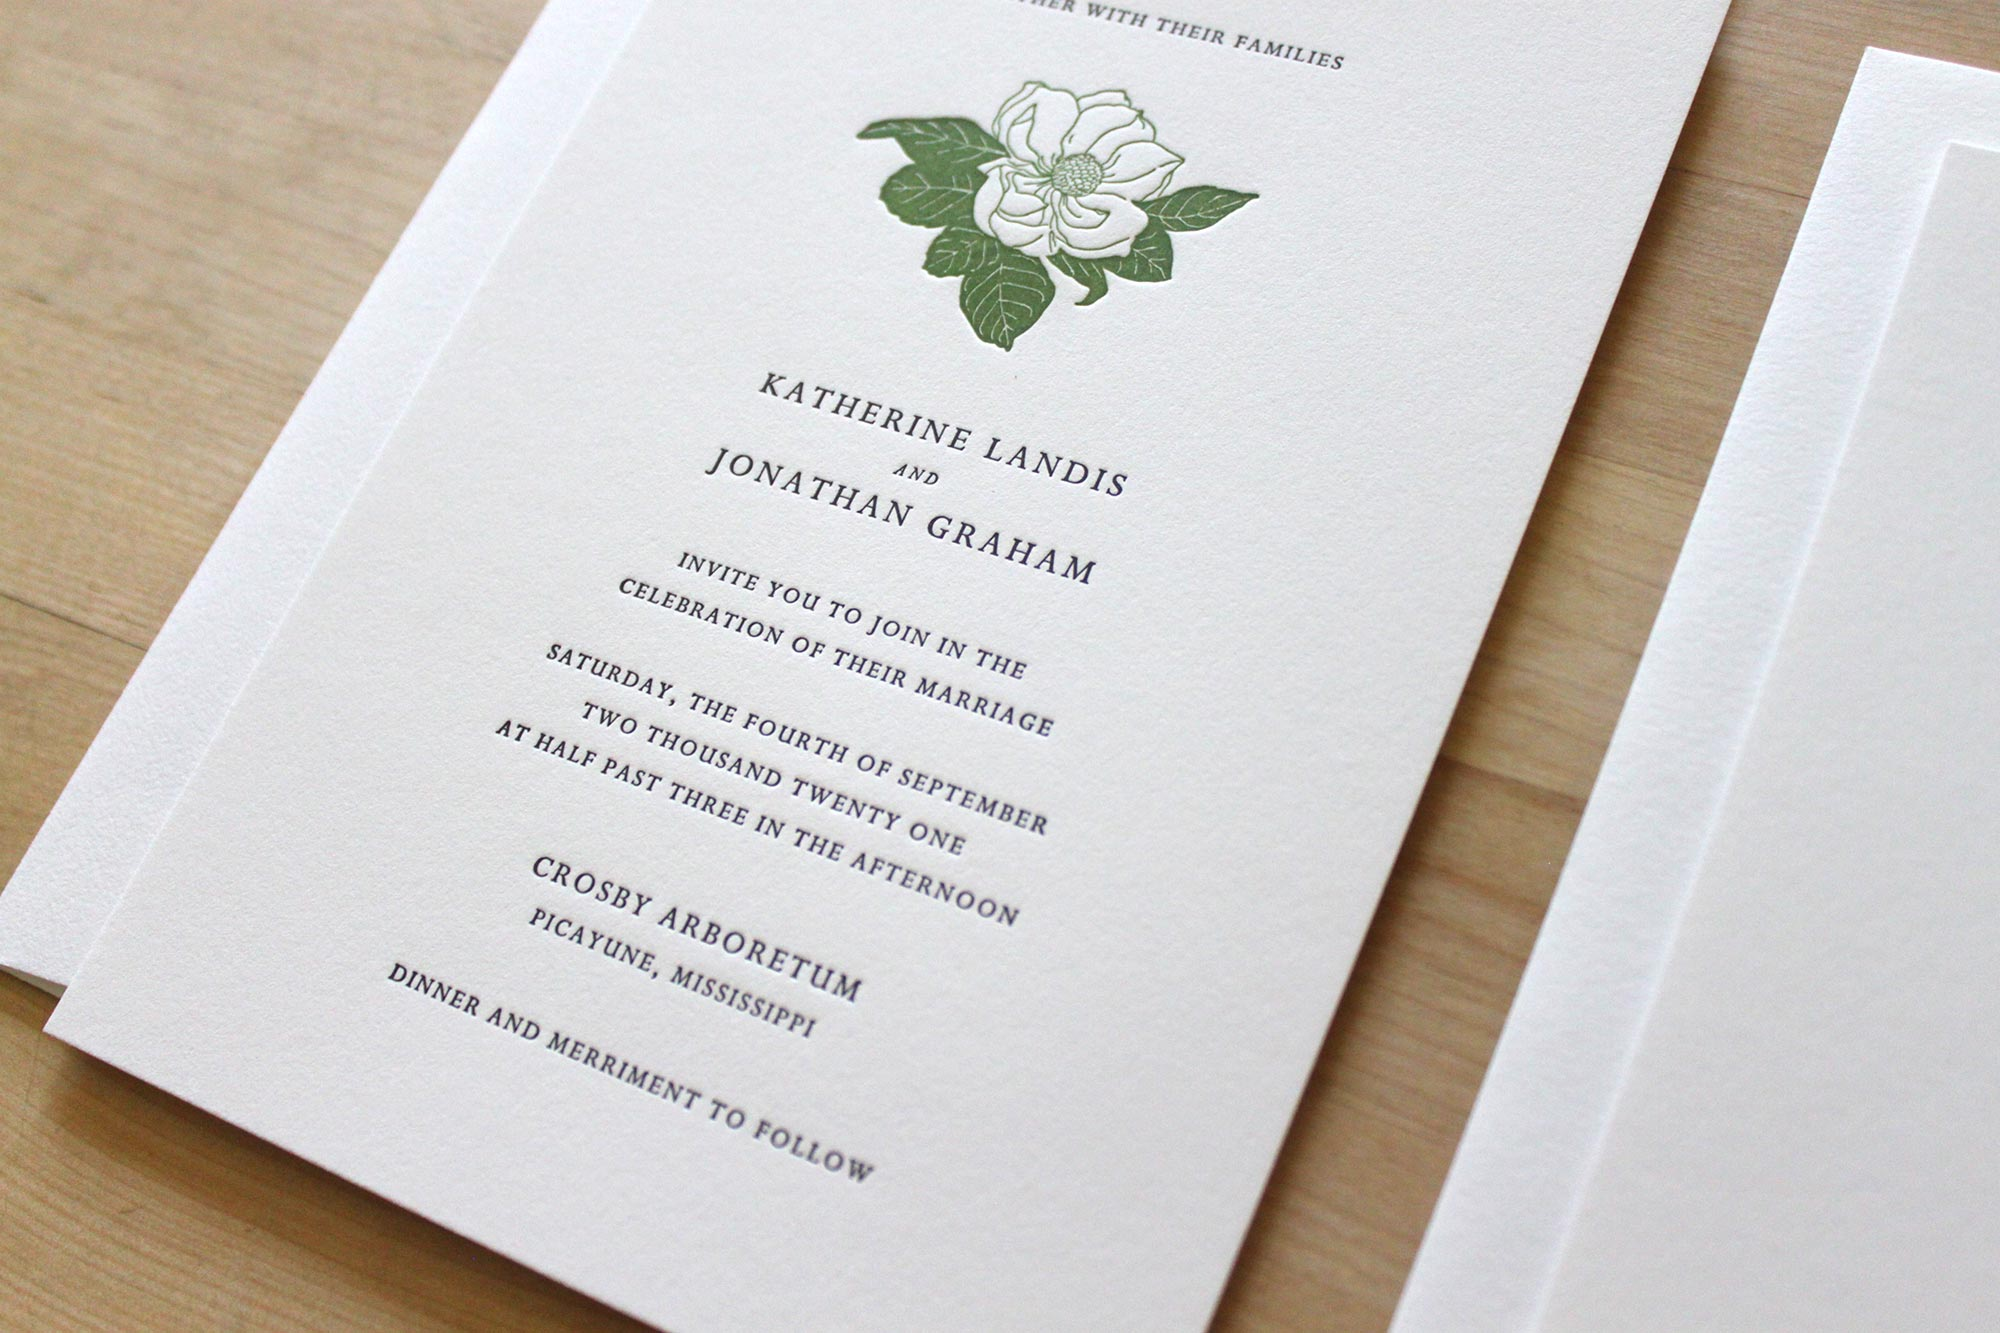 Magnolia-1-letterpress-wedding-invitation.jpg